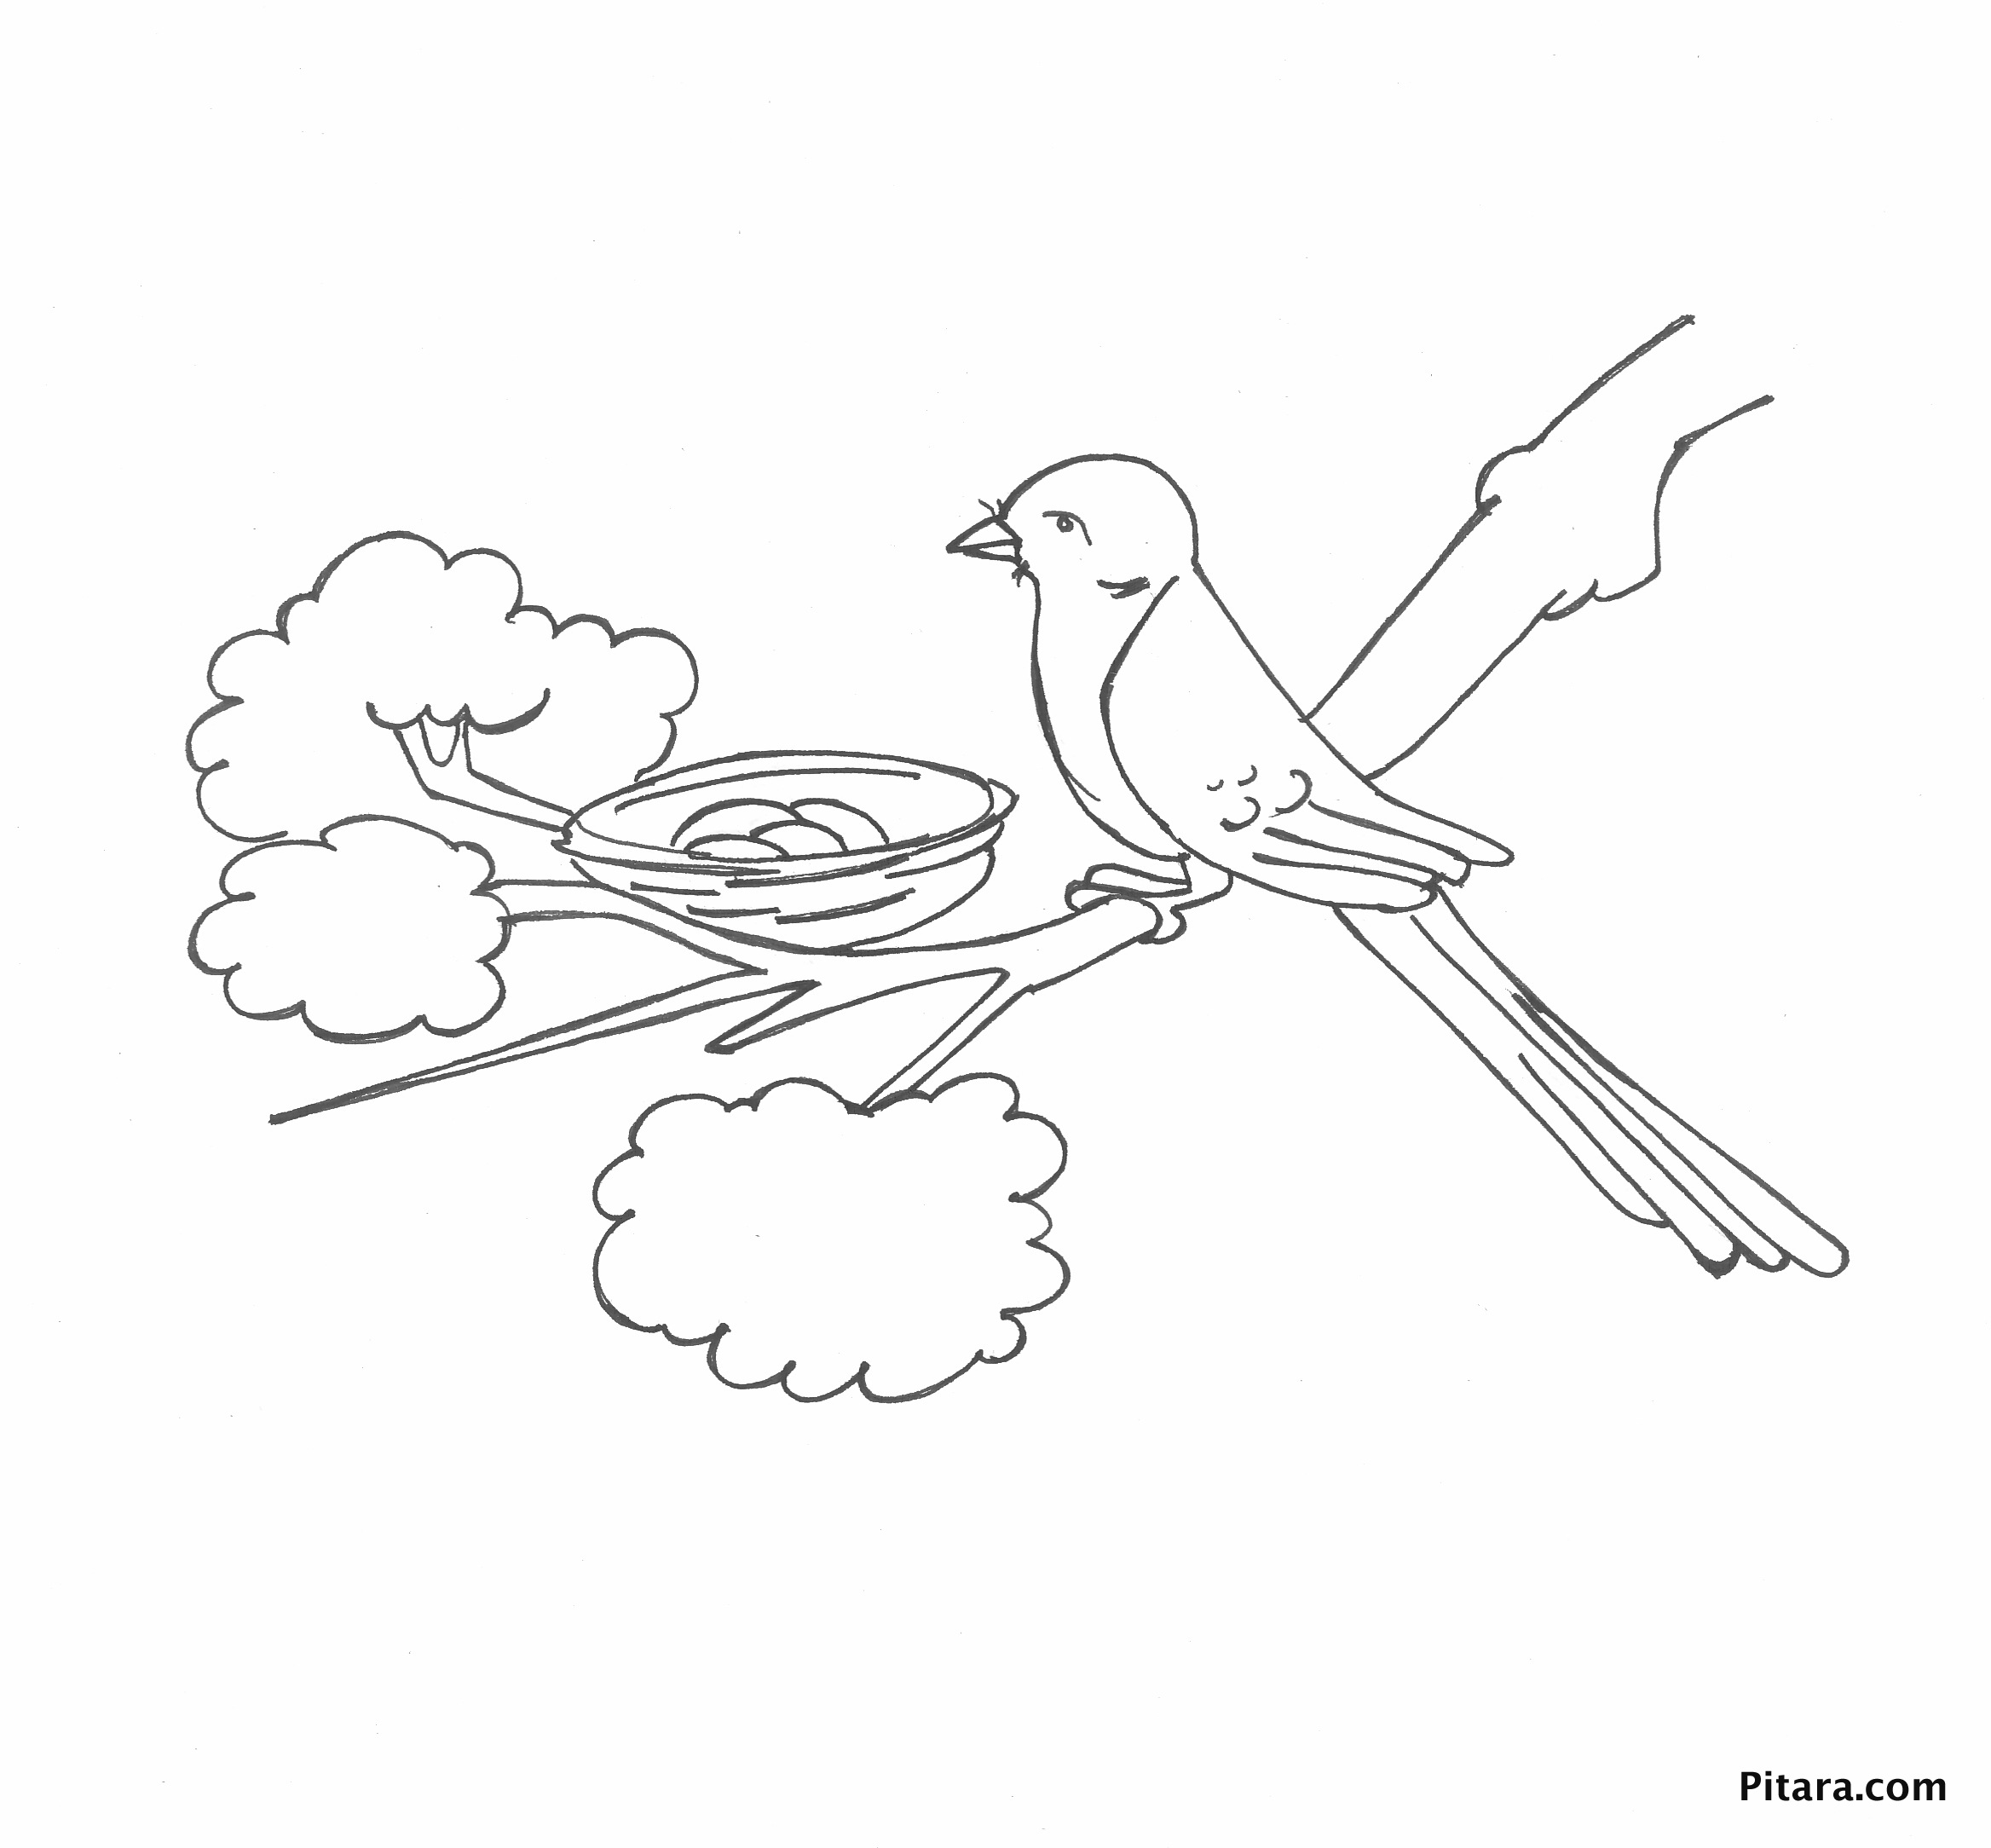 Bird in the nest – Coloring page